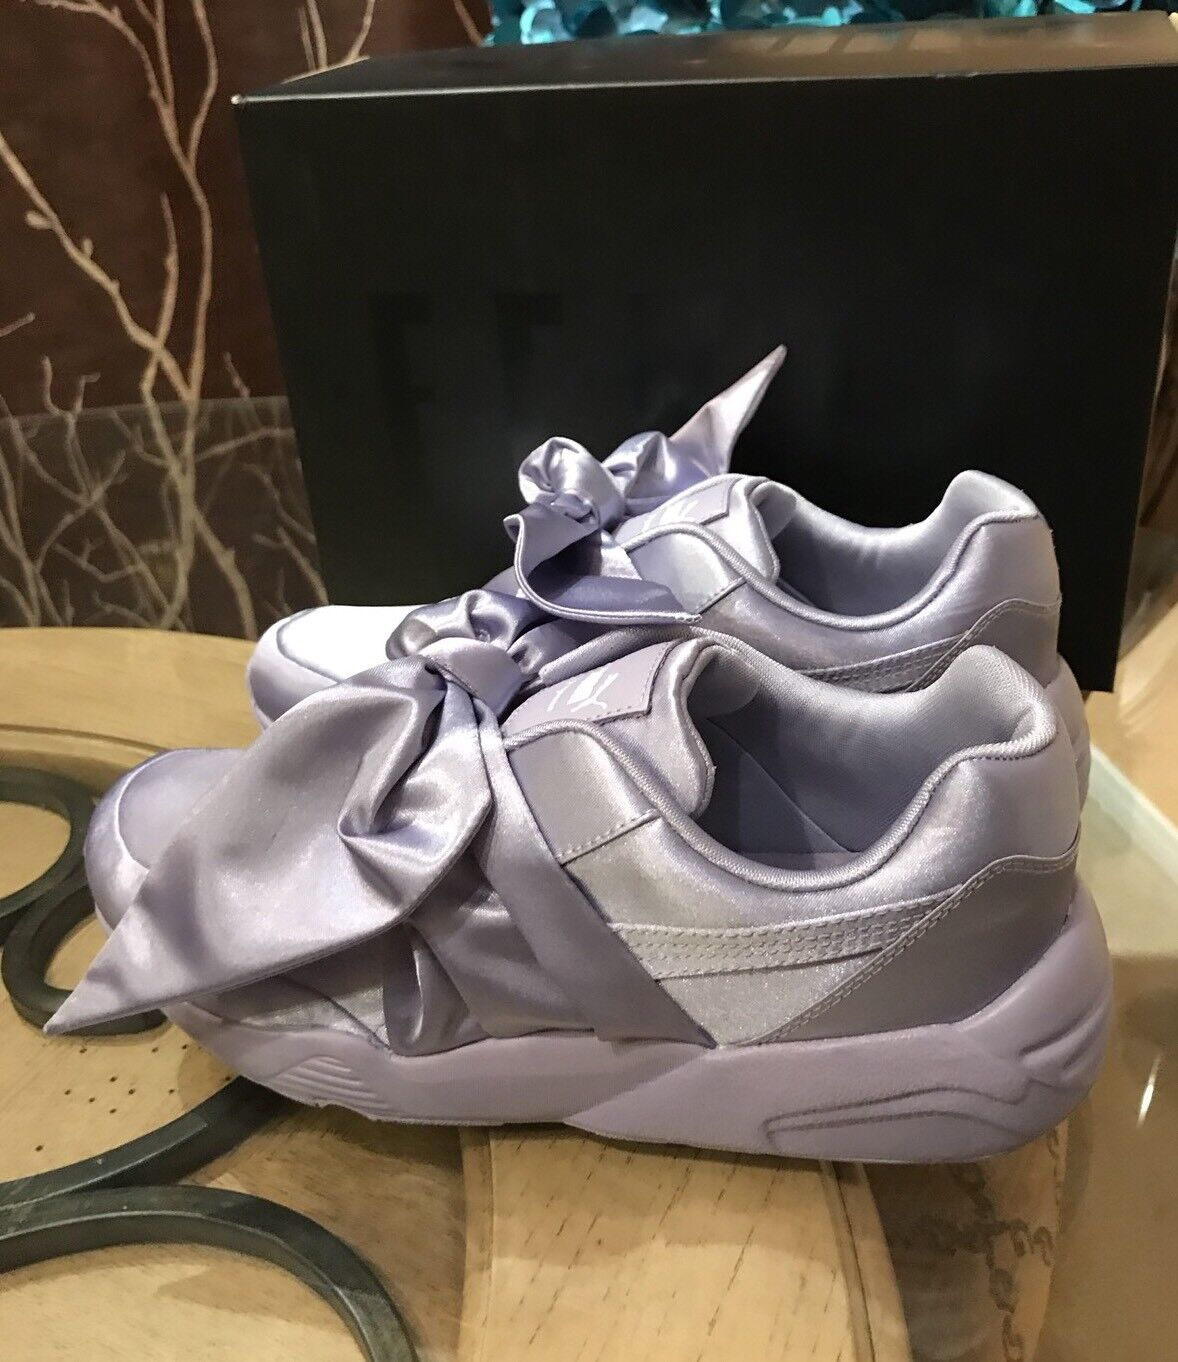 100% Auth Puma x Fenty By Rihanna Bow Sneakers Sweet Lavender 7.5 38.5 Womens